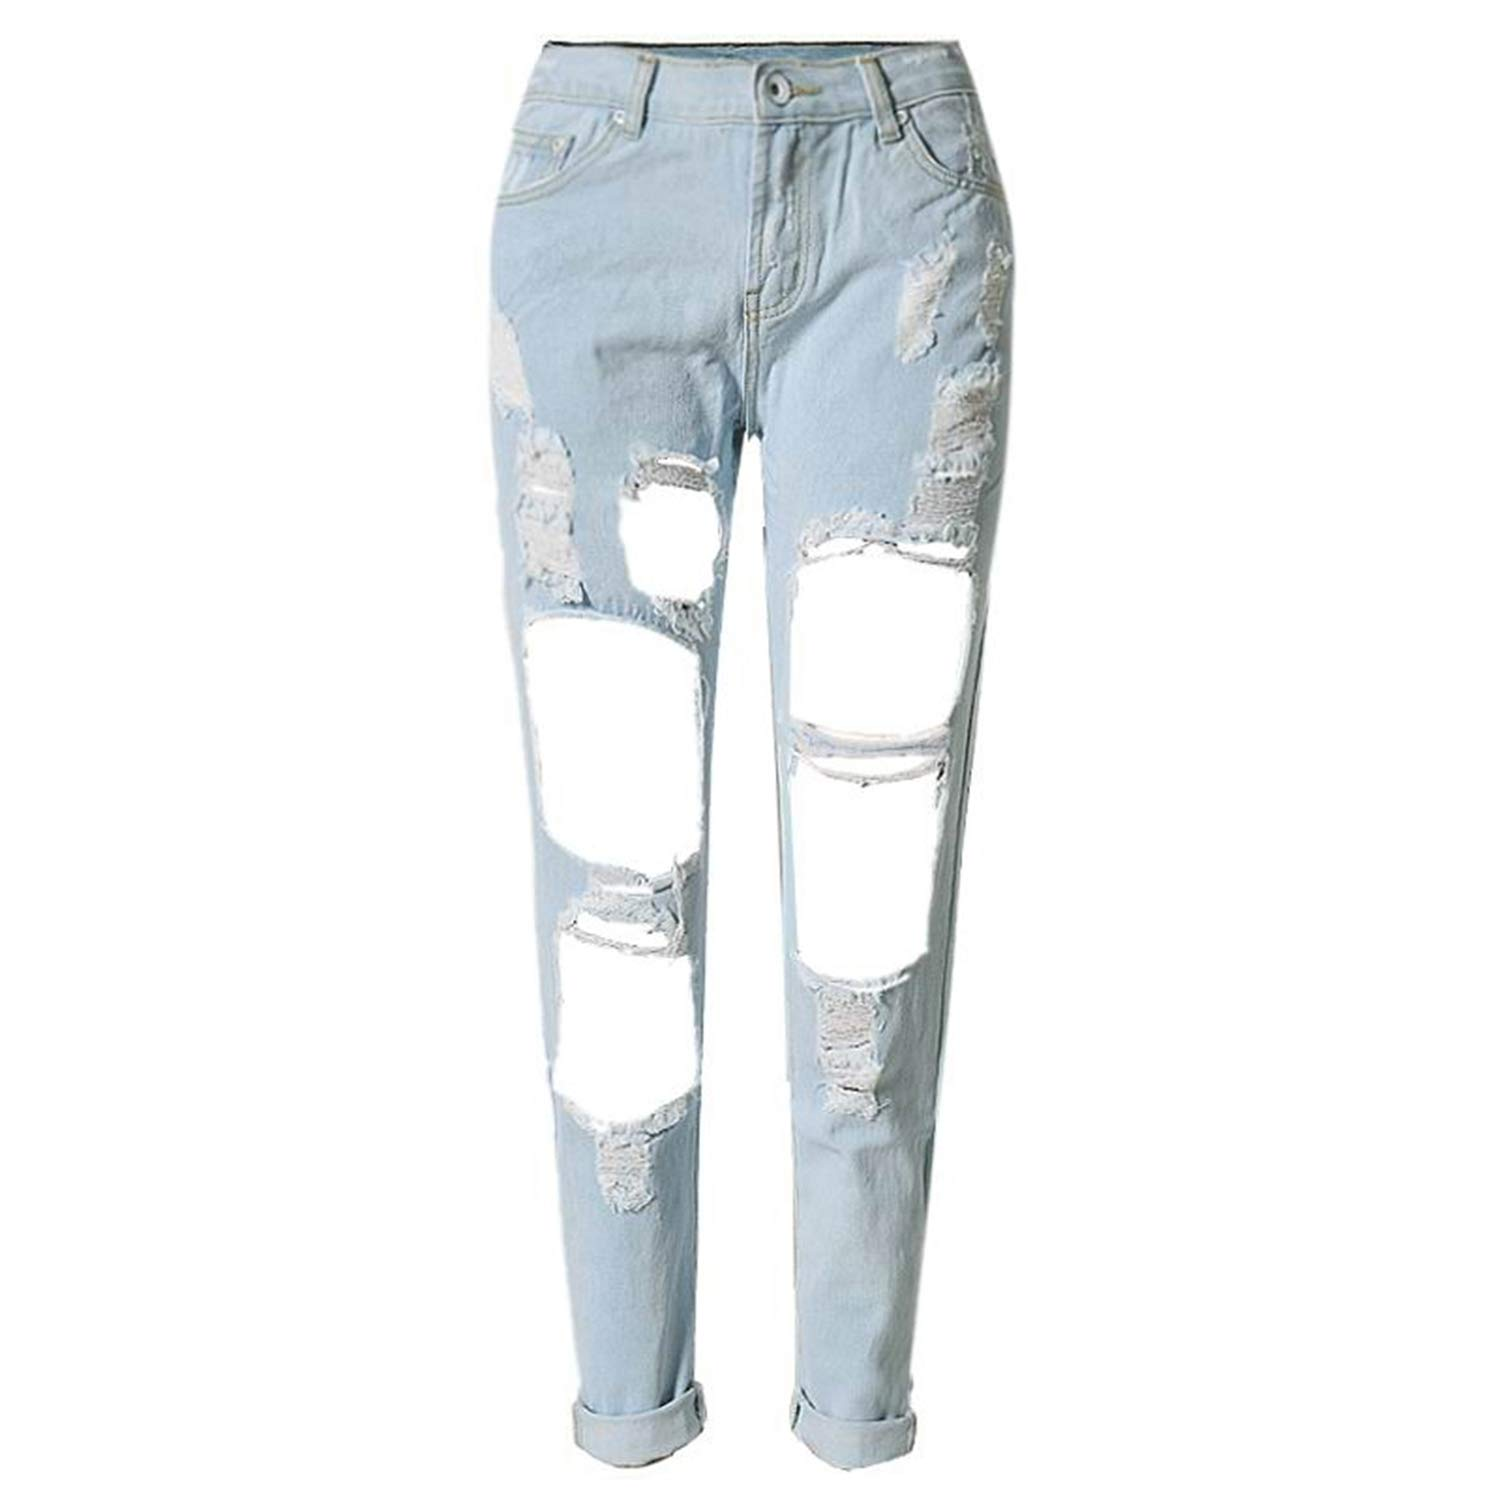 Light bluee Fashion Ripped Jeans Casual Washed Holes Boyfriend Jeans for Women Regular Long Torn Jeans Denim Pants